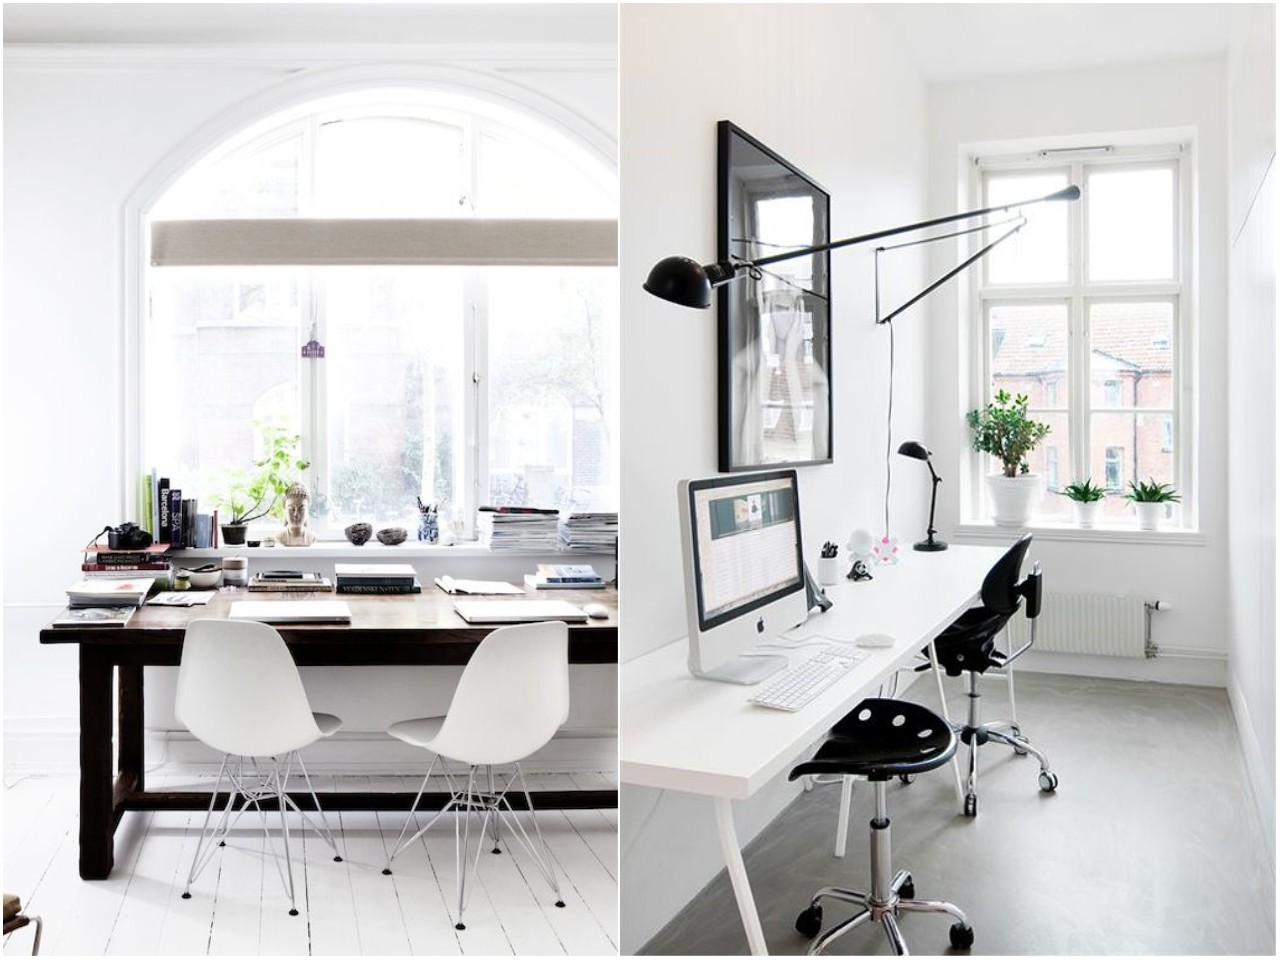 7 tips en dise o de oficinas peque as y modernas for Oficinas modernas blancas